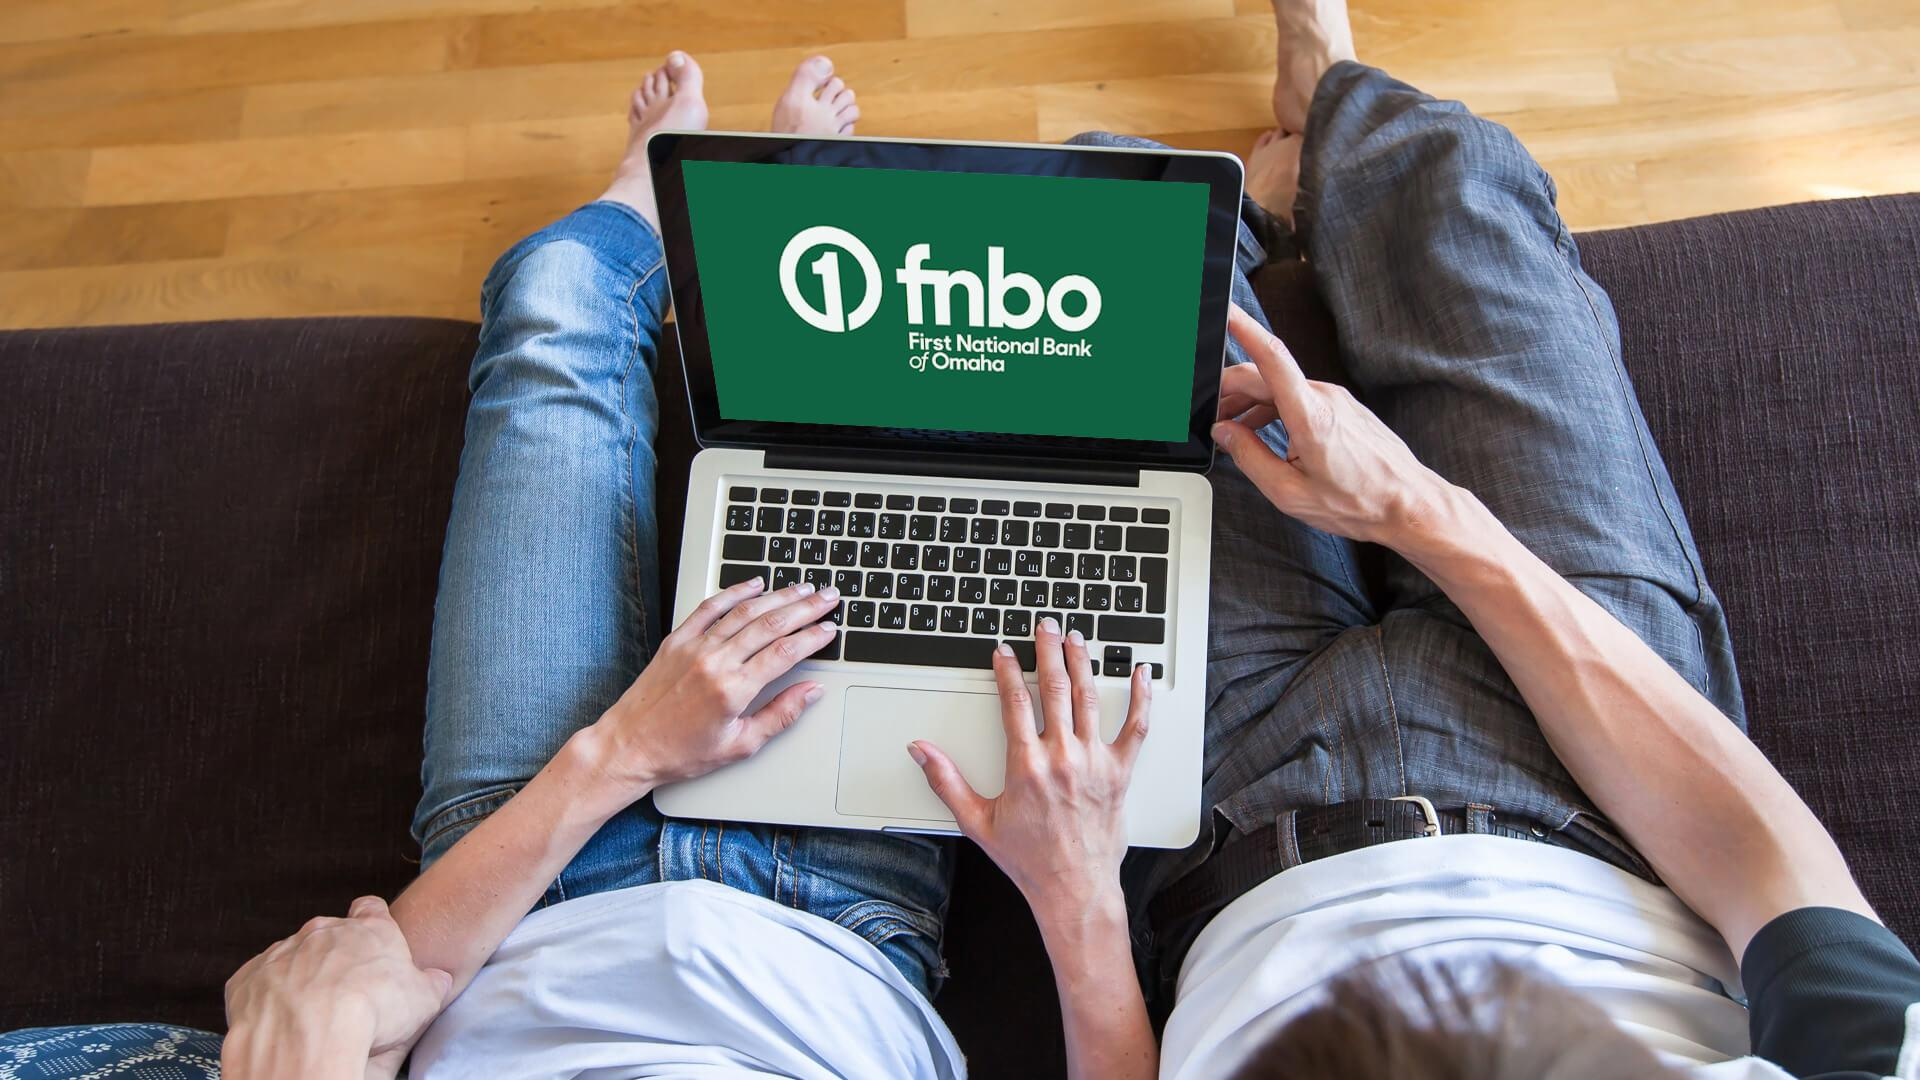 FNBO First National Bank of Omaha website